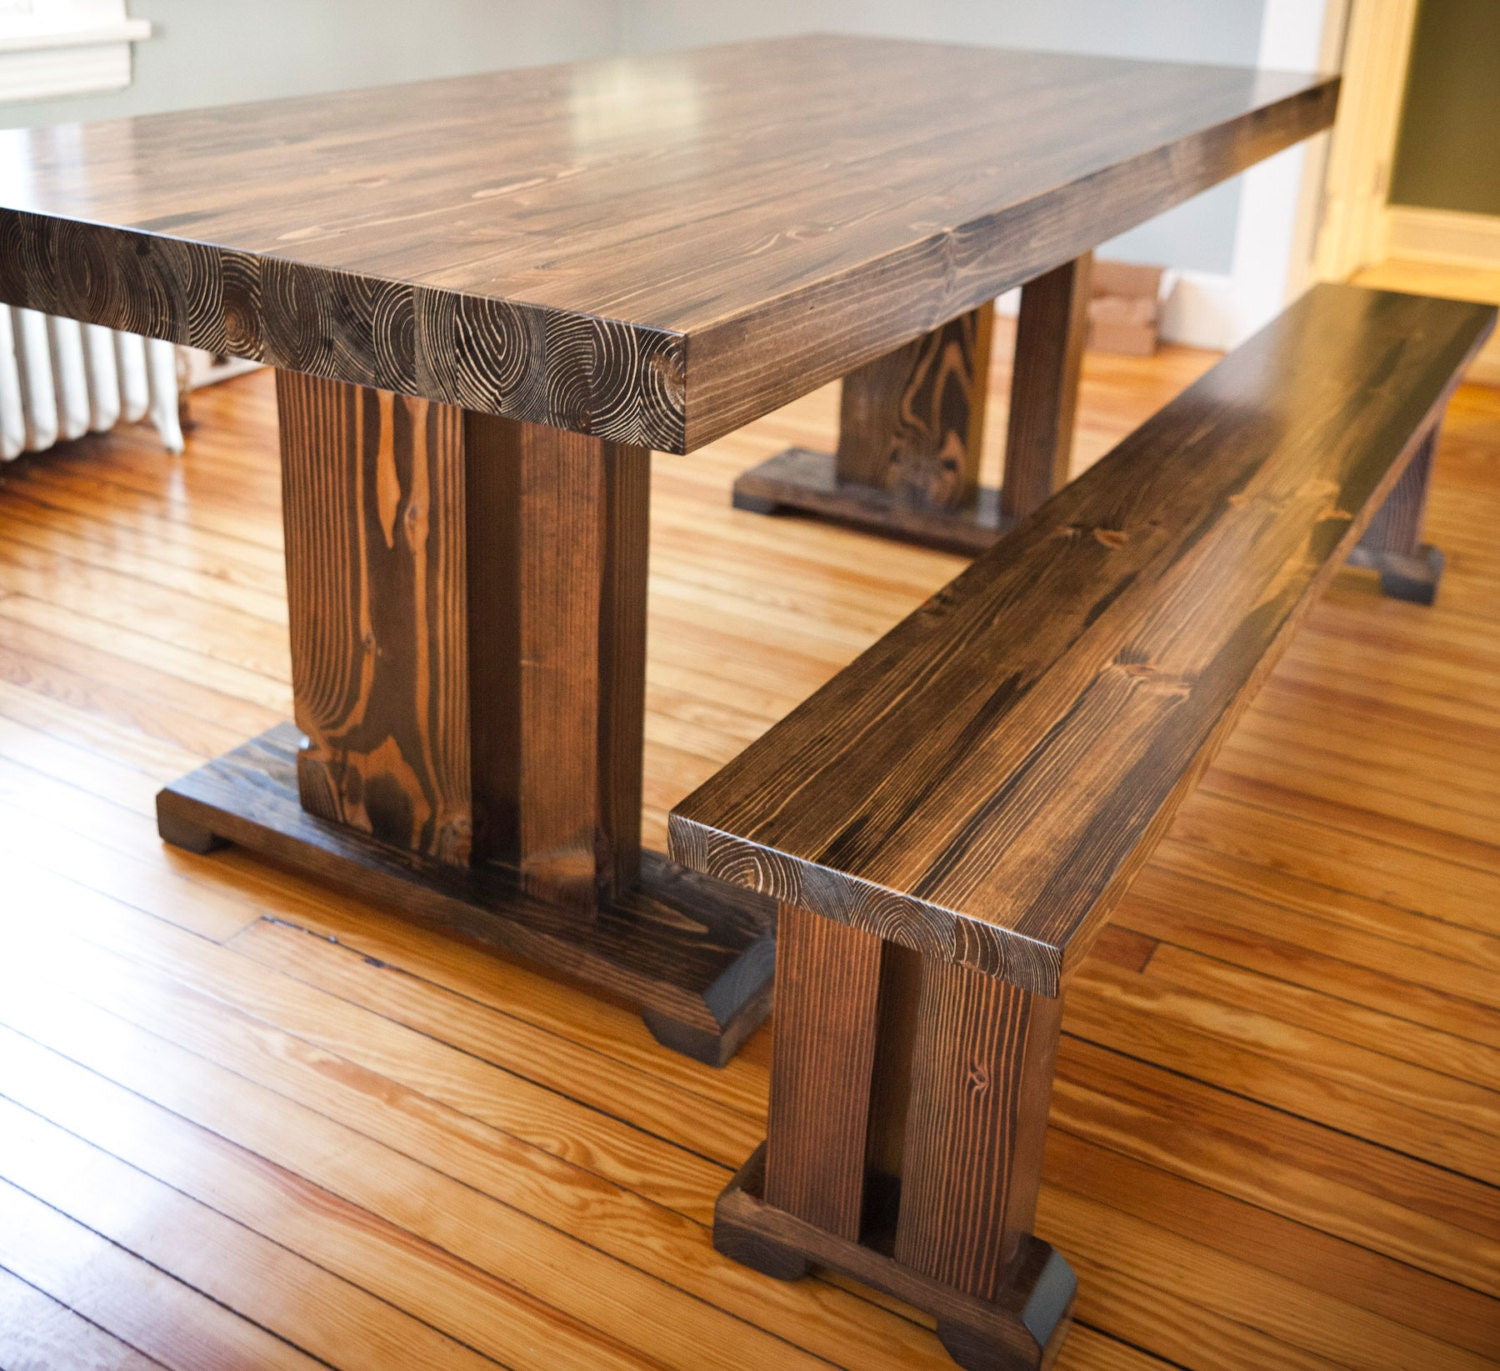 Large Farmhouse Kitchen Table Rustic Kitchen Tables Modern Handmade Rustic Kitchen Tables With